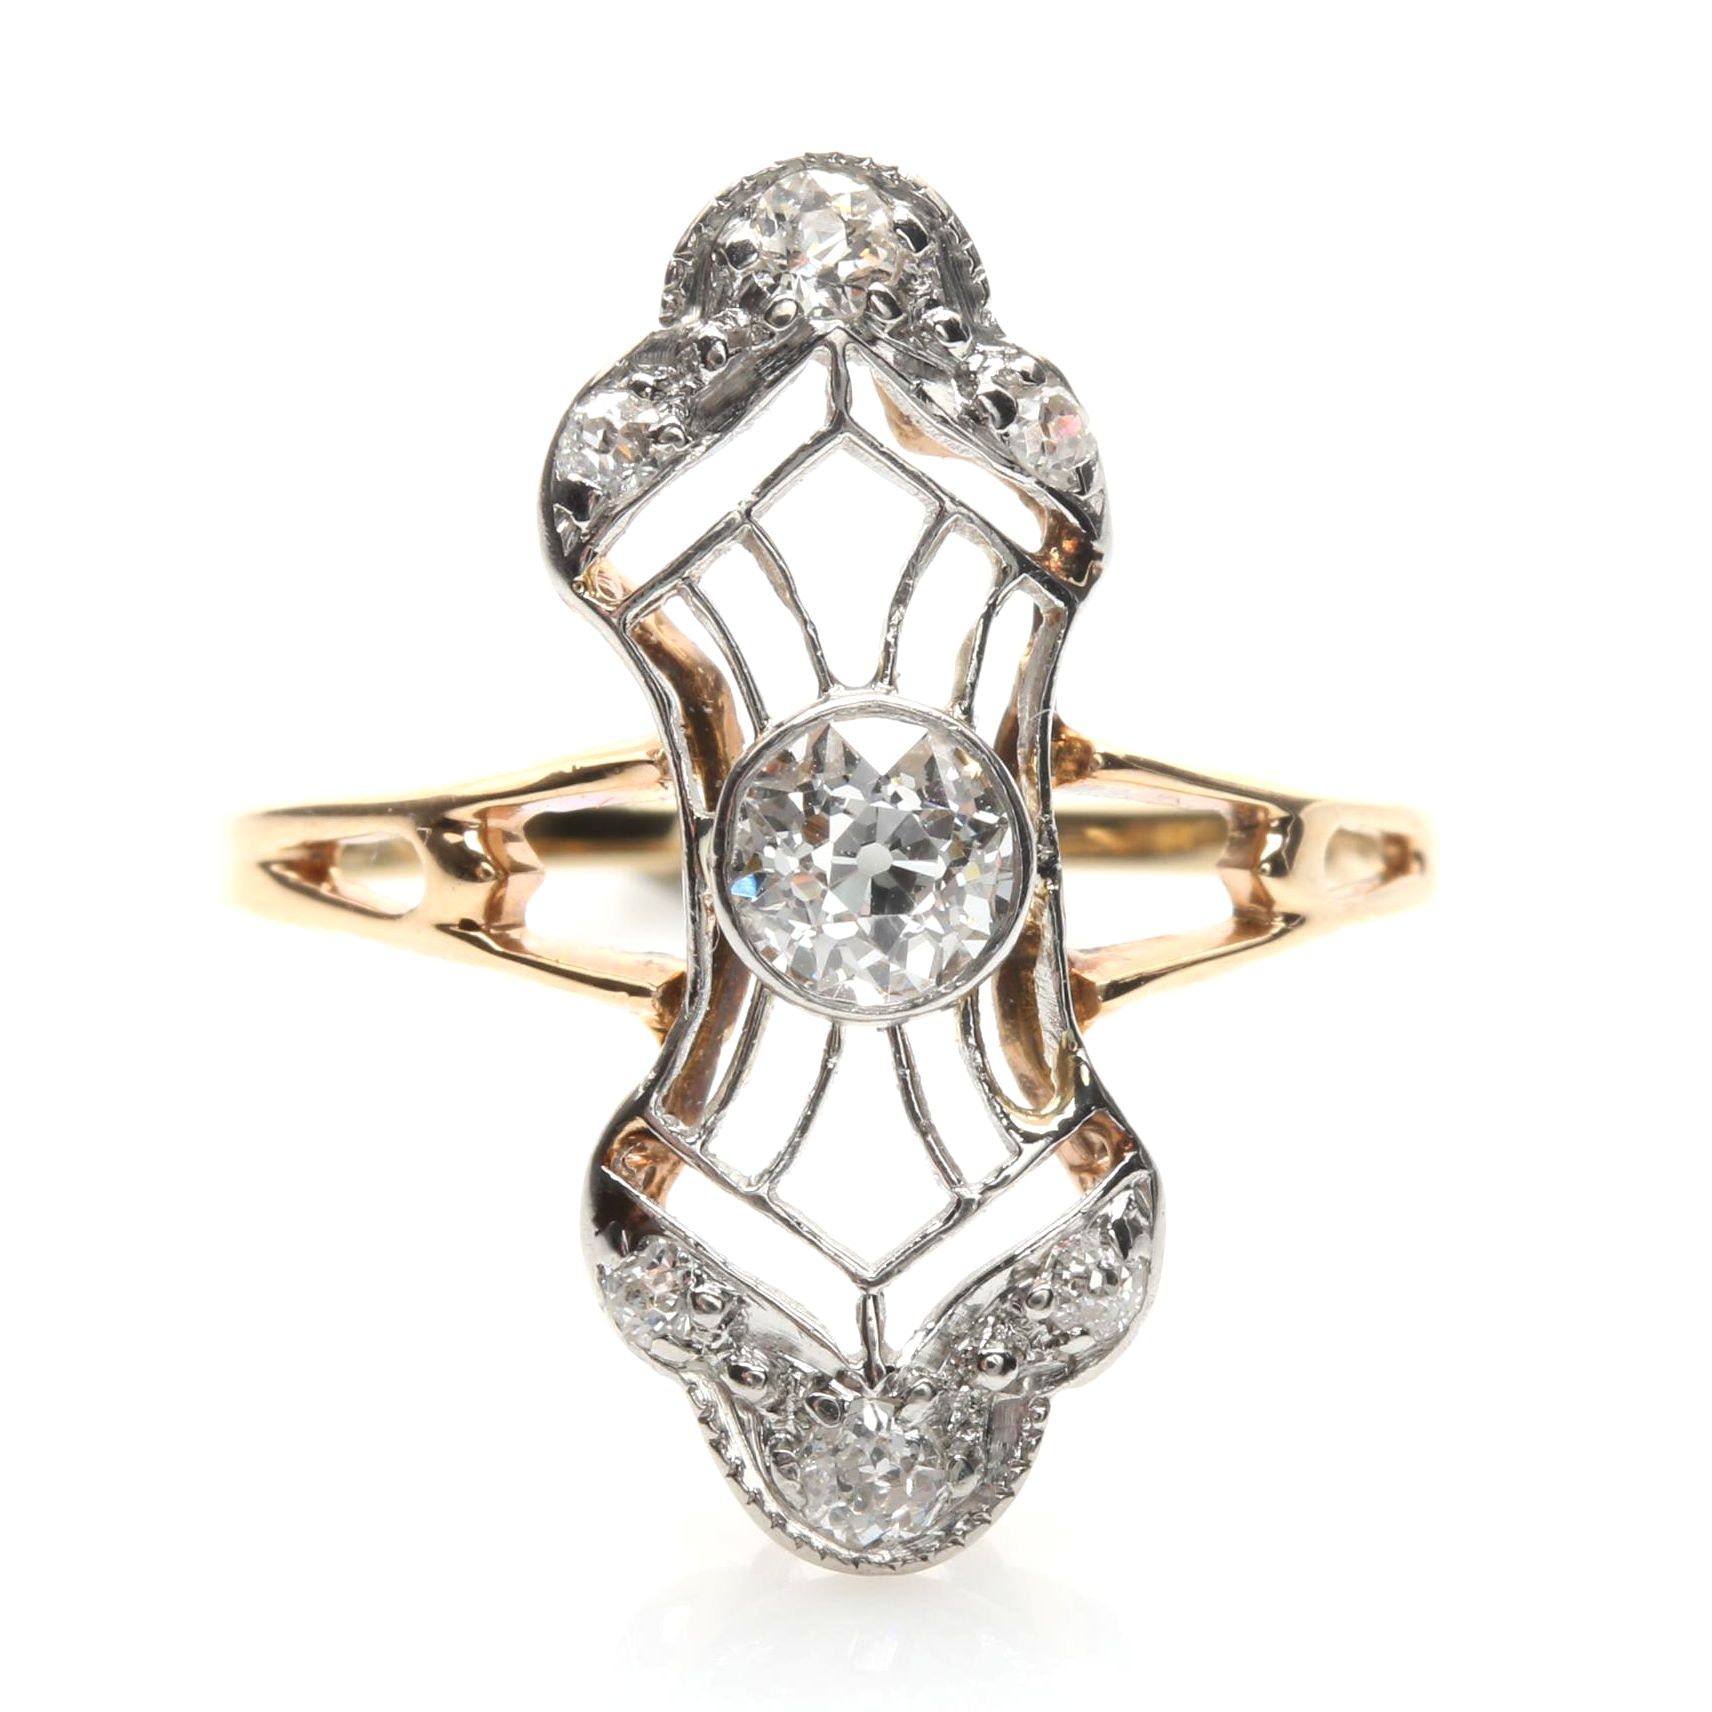 14K Yellow Gold Diamond Dinner Ring with Platinum Accents